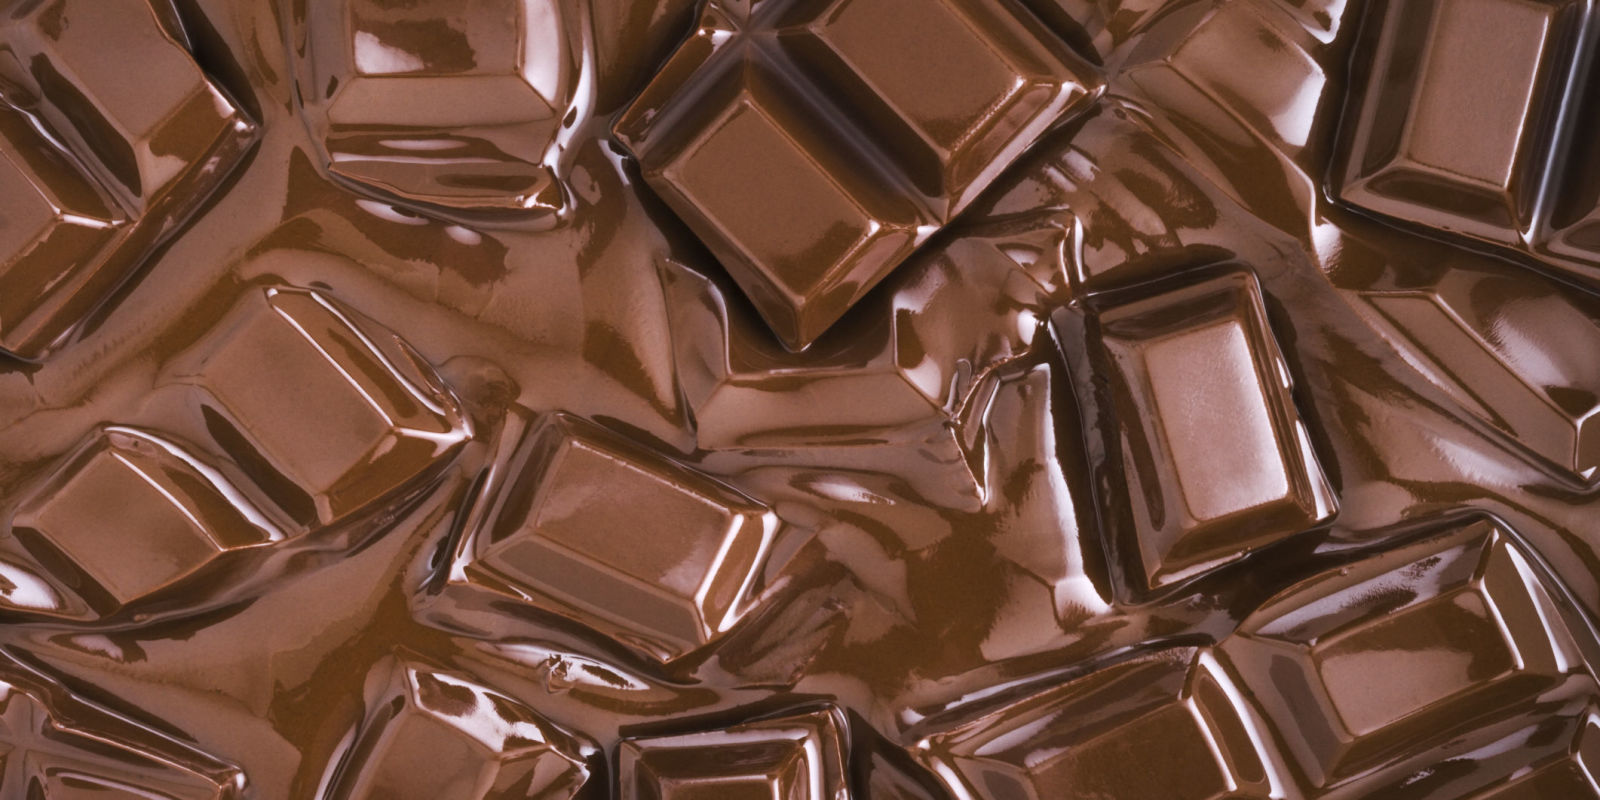 Deals for National Chocolate Day October 28 - Freebies for ...